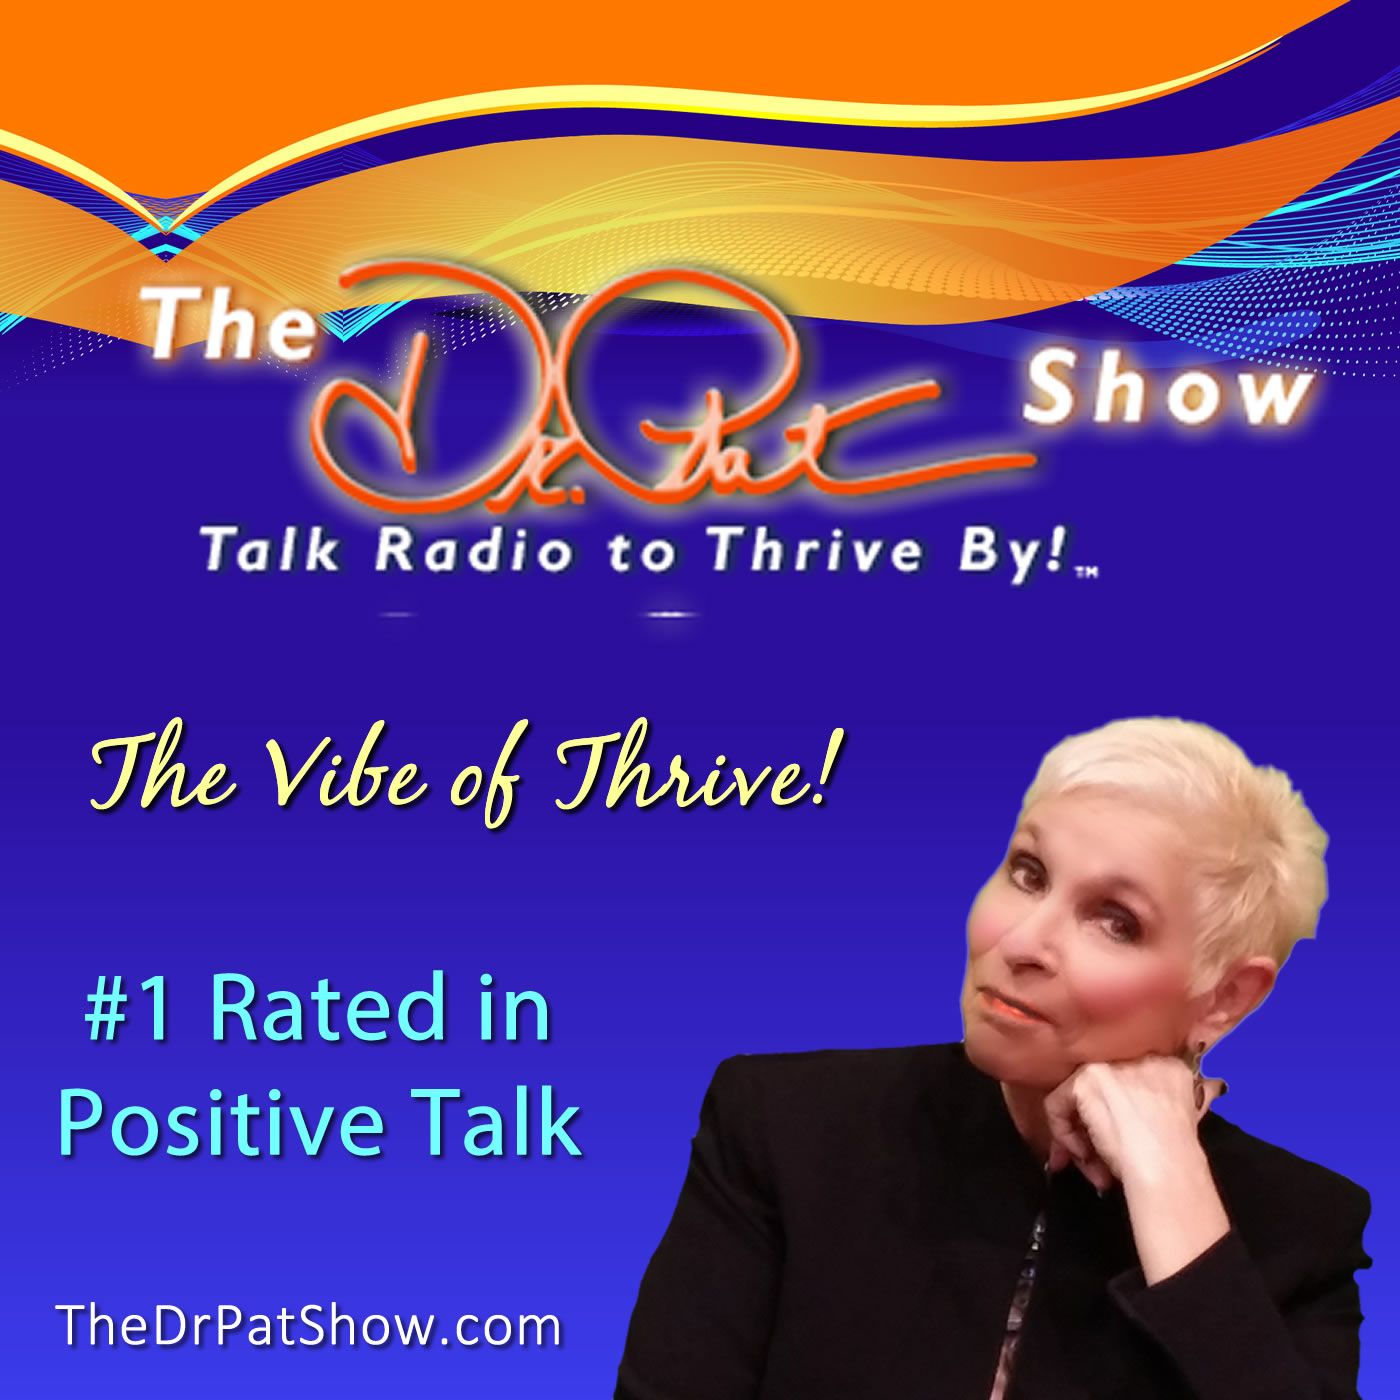 The Dr. Pat Show with Dr. Pat Baccili